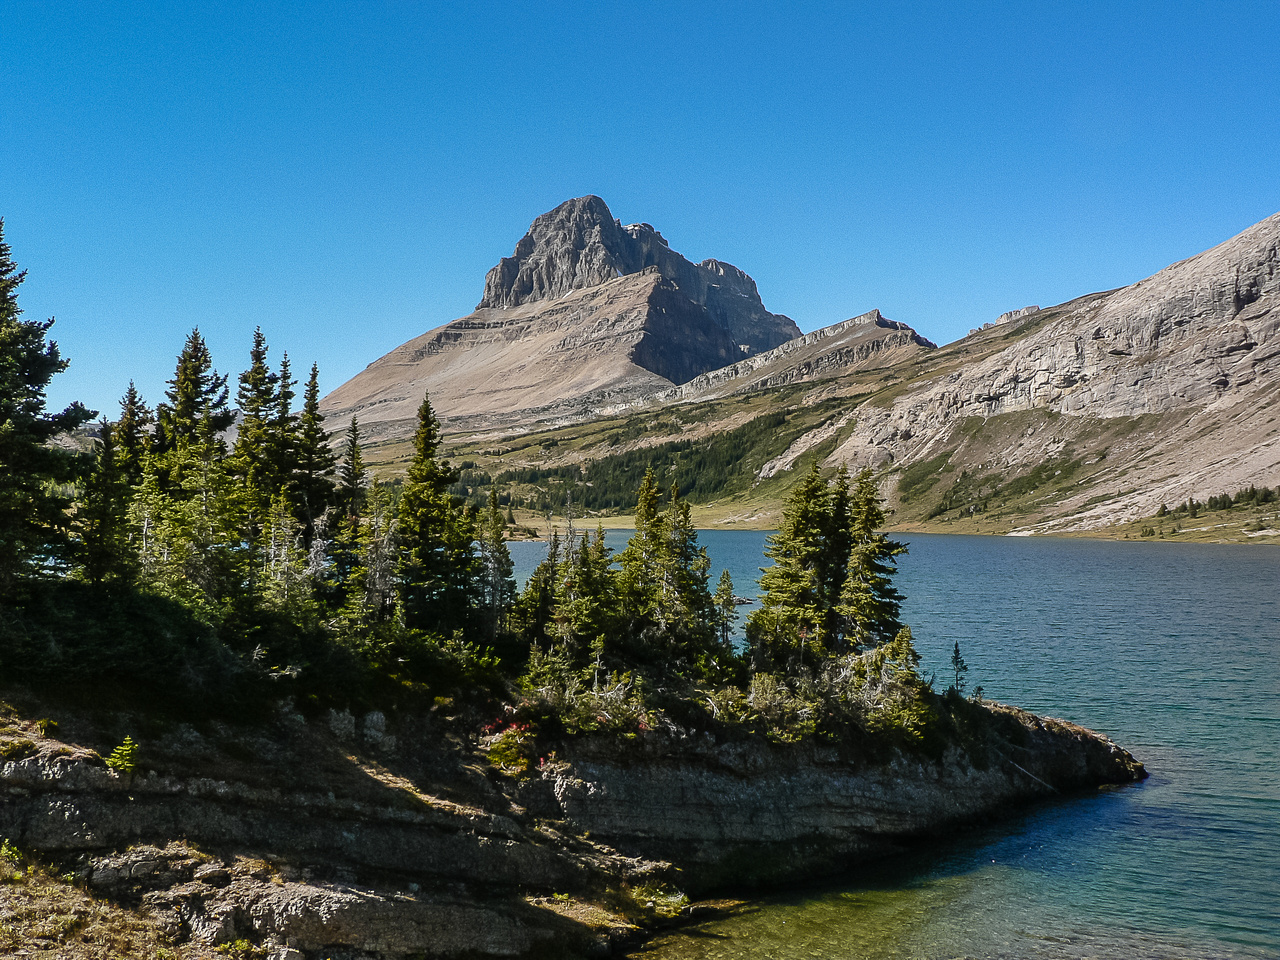 Views of Ptarmigan Peak over Baker Lake.